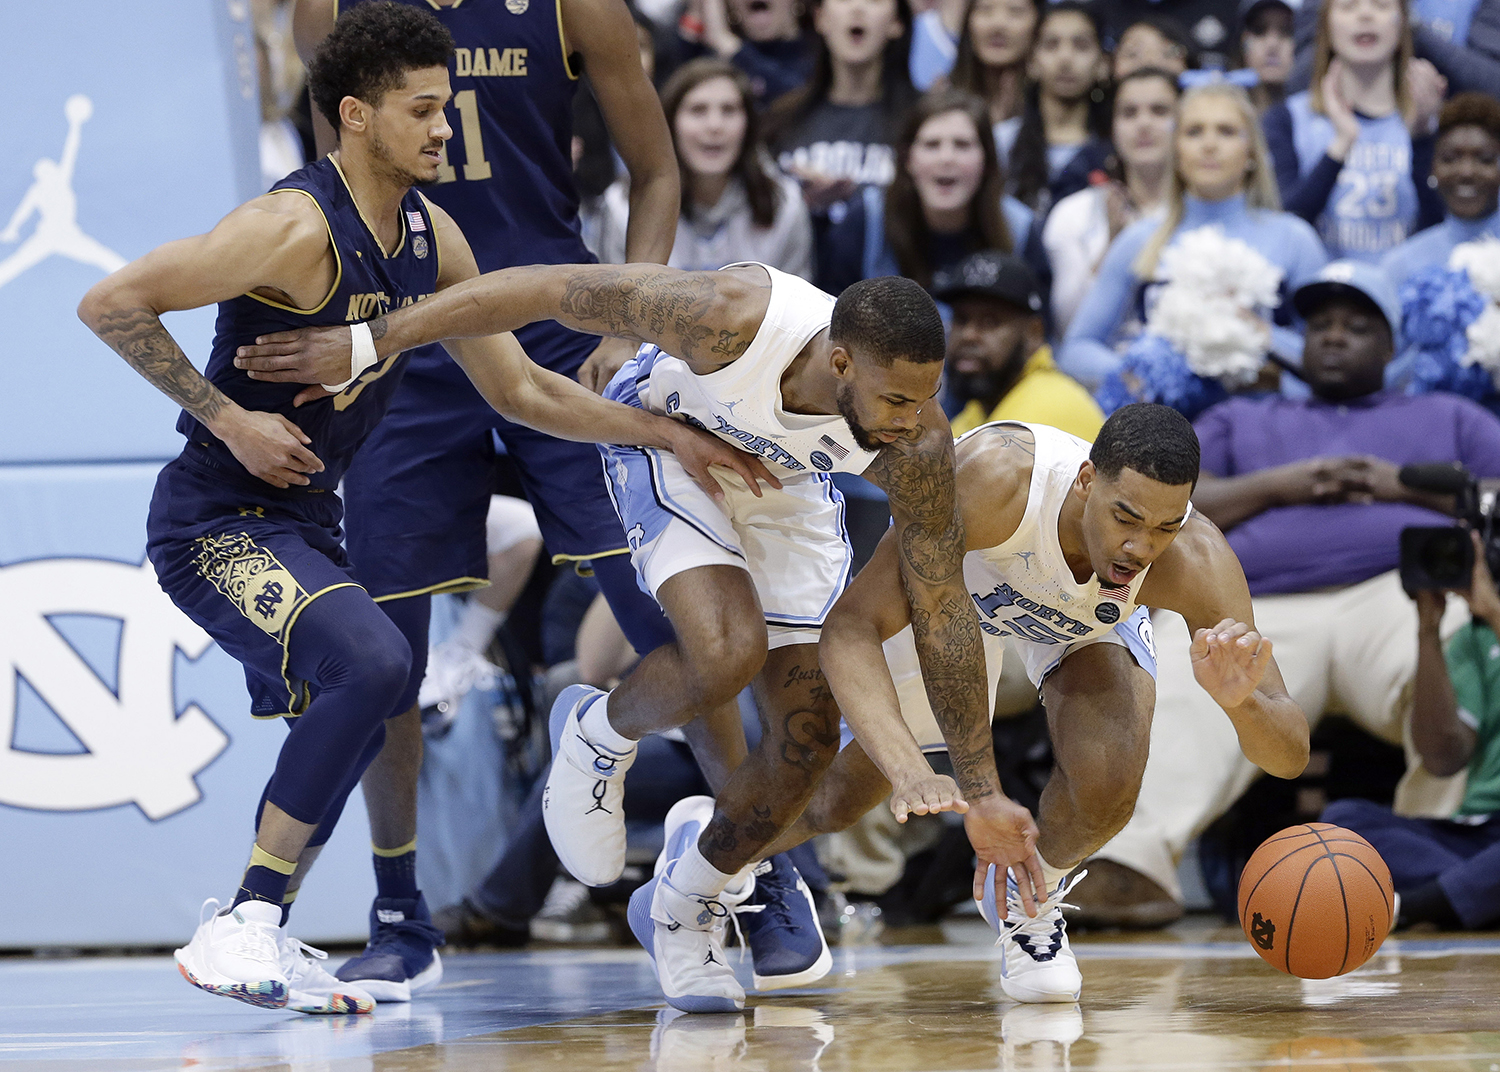 "<div class=""meta image-caption""><div class=""origin-logo origin-image ap""><span>AP</span></div><span class=""caption-text"">Notre Dame's Prentiss Hubb, left, reaches for a loose ball with North Carolina's Seventh Woods and Garrison Brooks, right, (Gerry Broome)</span></div>"